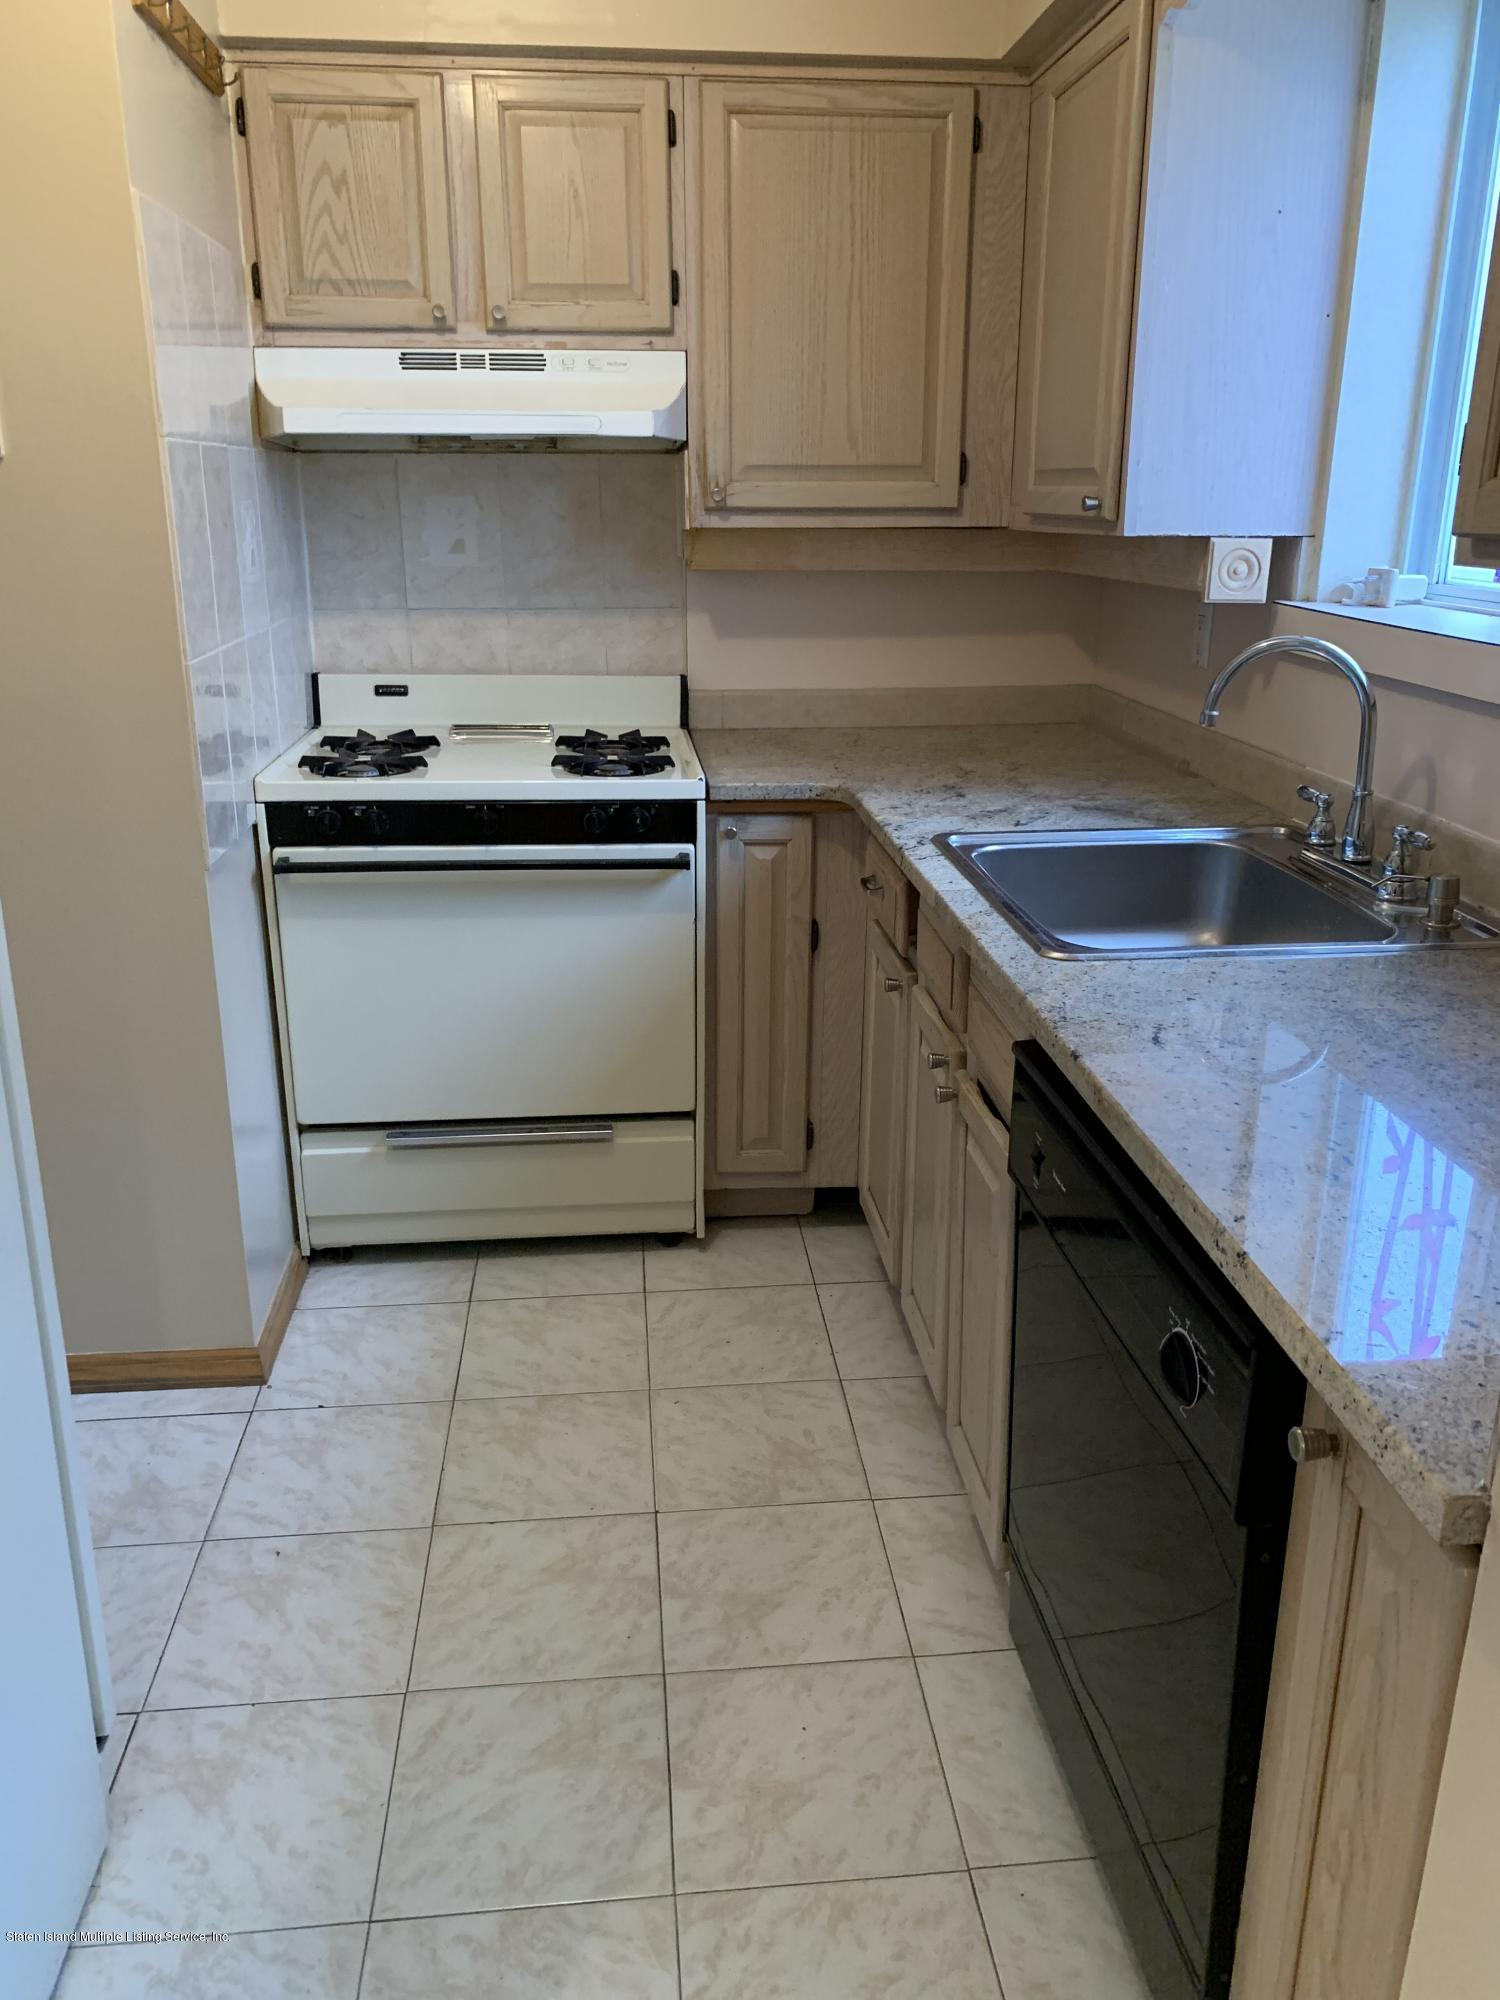 1058 Olympia Boulevard,Staten Island,New York,10306,United States,2 Bedrooms Bedrooms,7 Rooms Rooms,2 BathroomsBathrooms,Res-Rental,Olympia,1135167